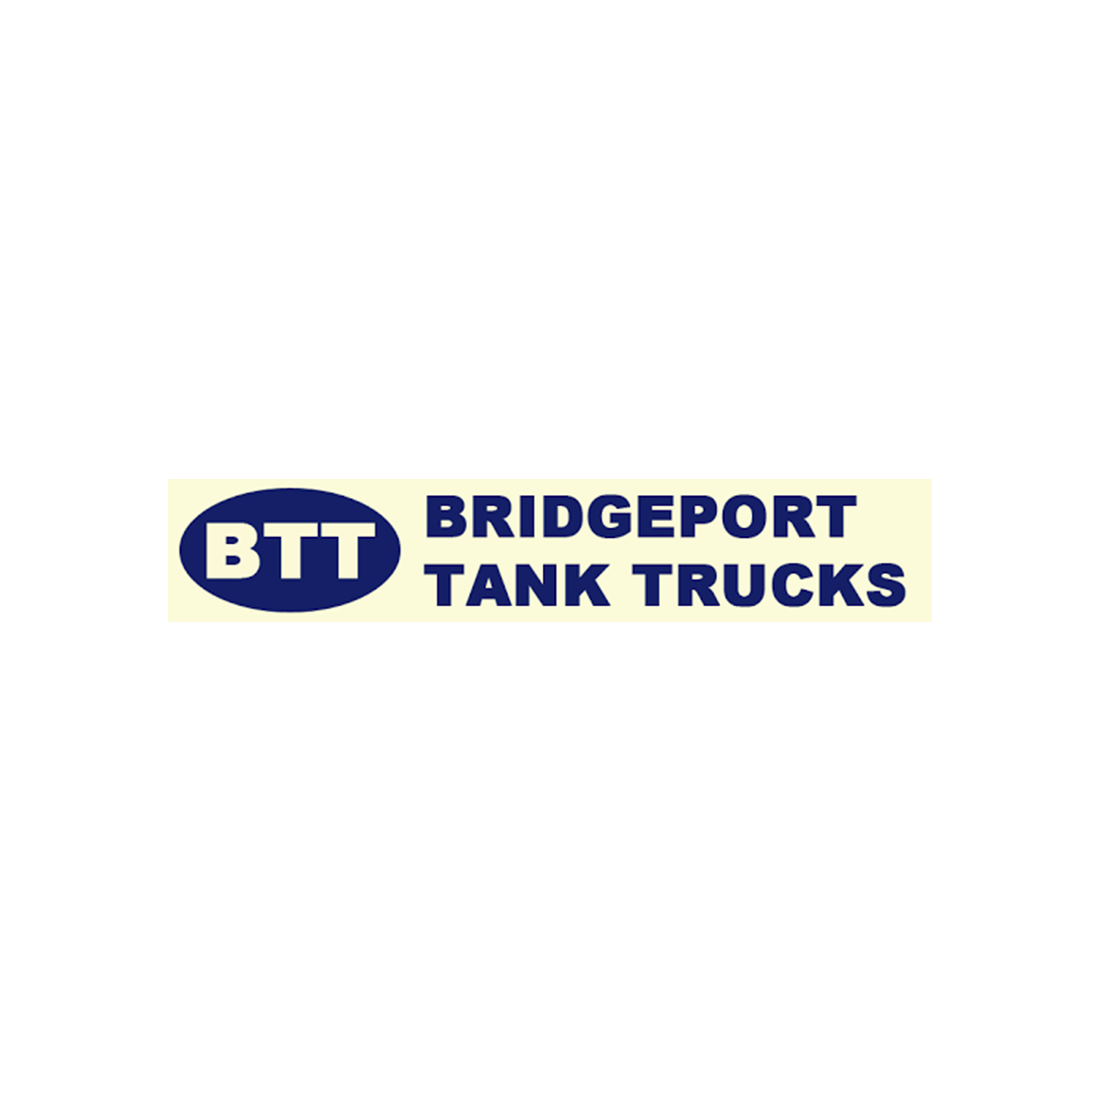 Bridgeport Tank Trucks